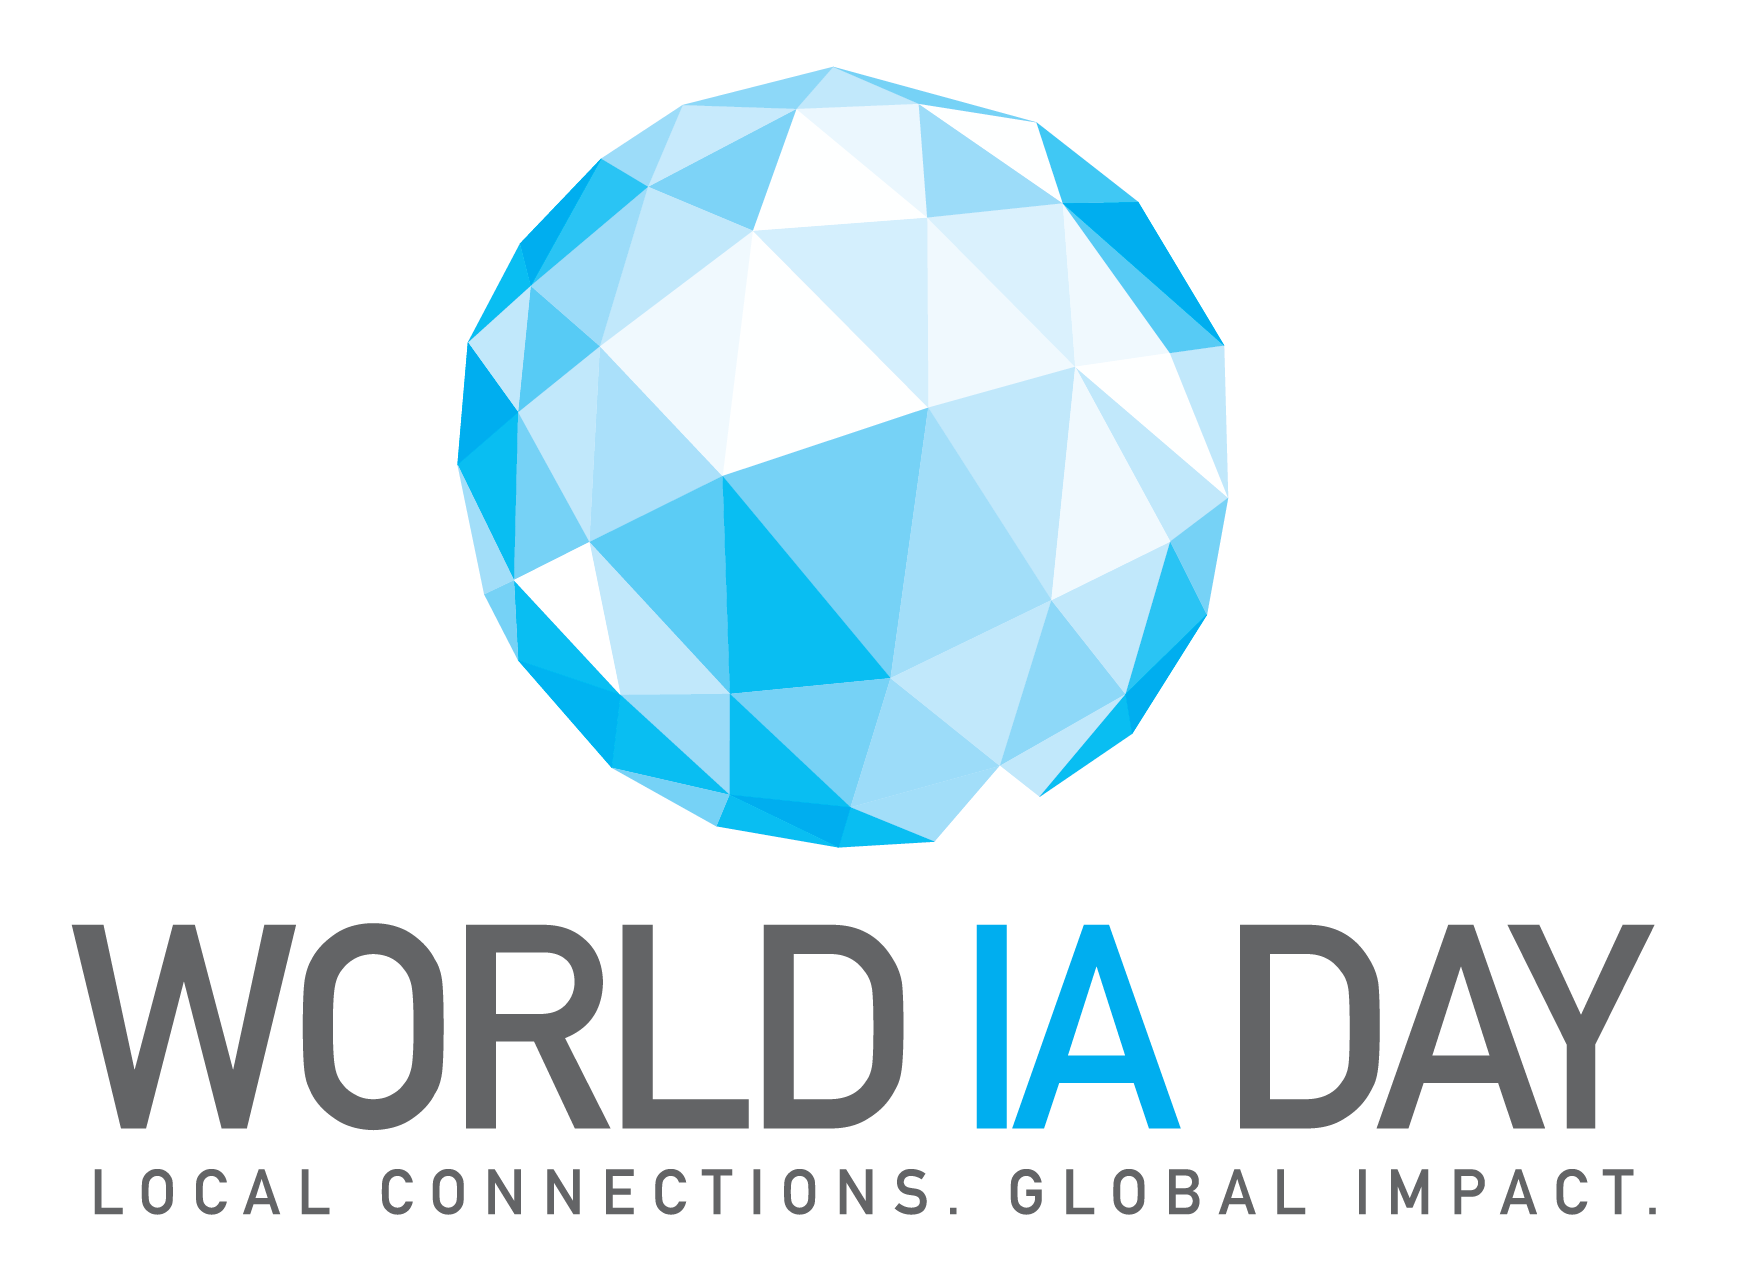 World IA Day